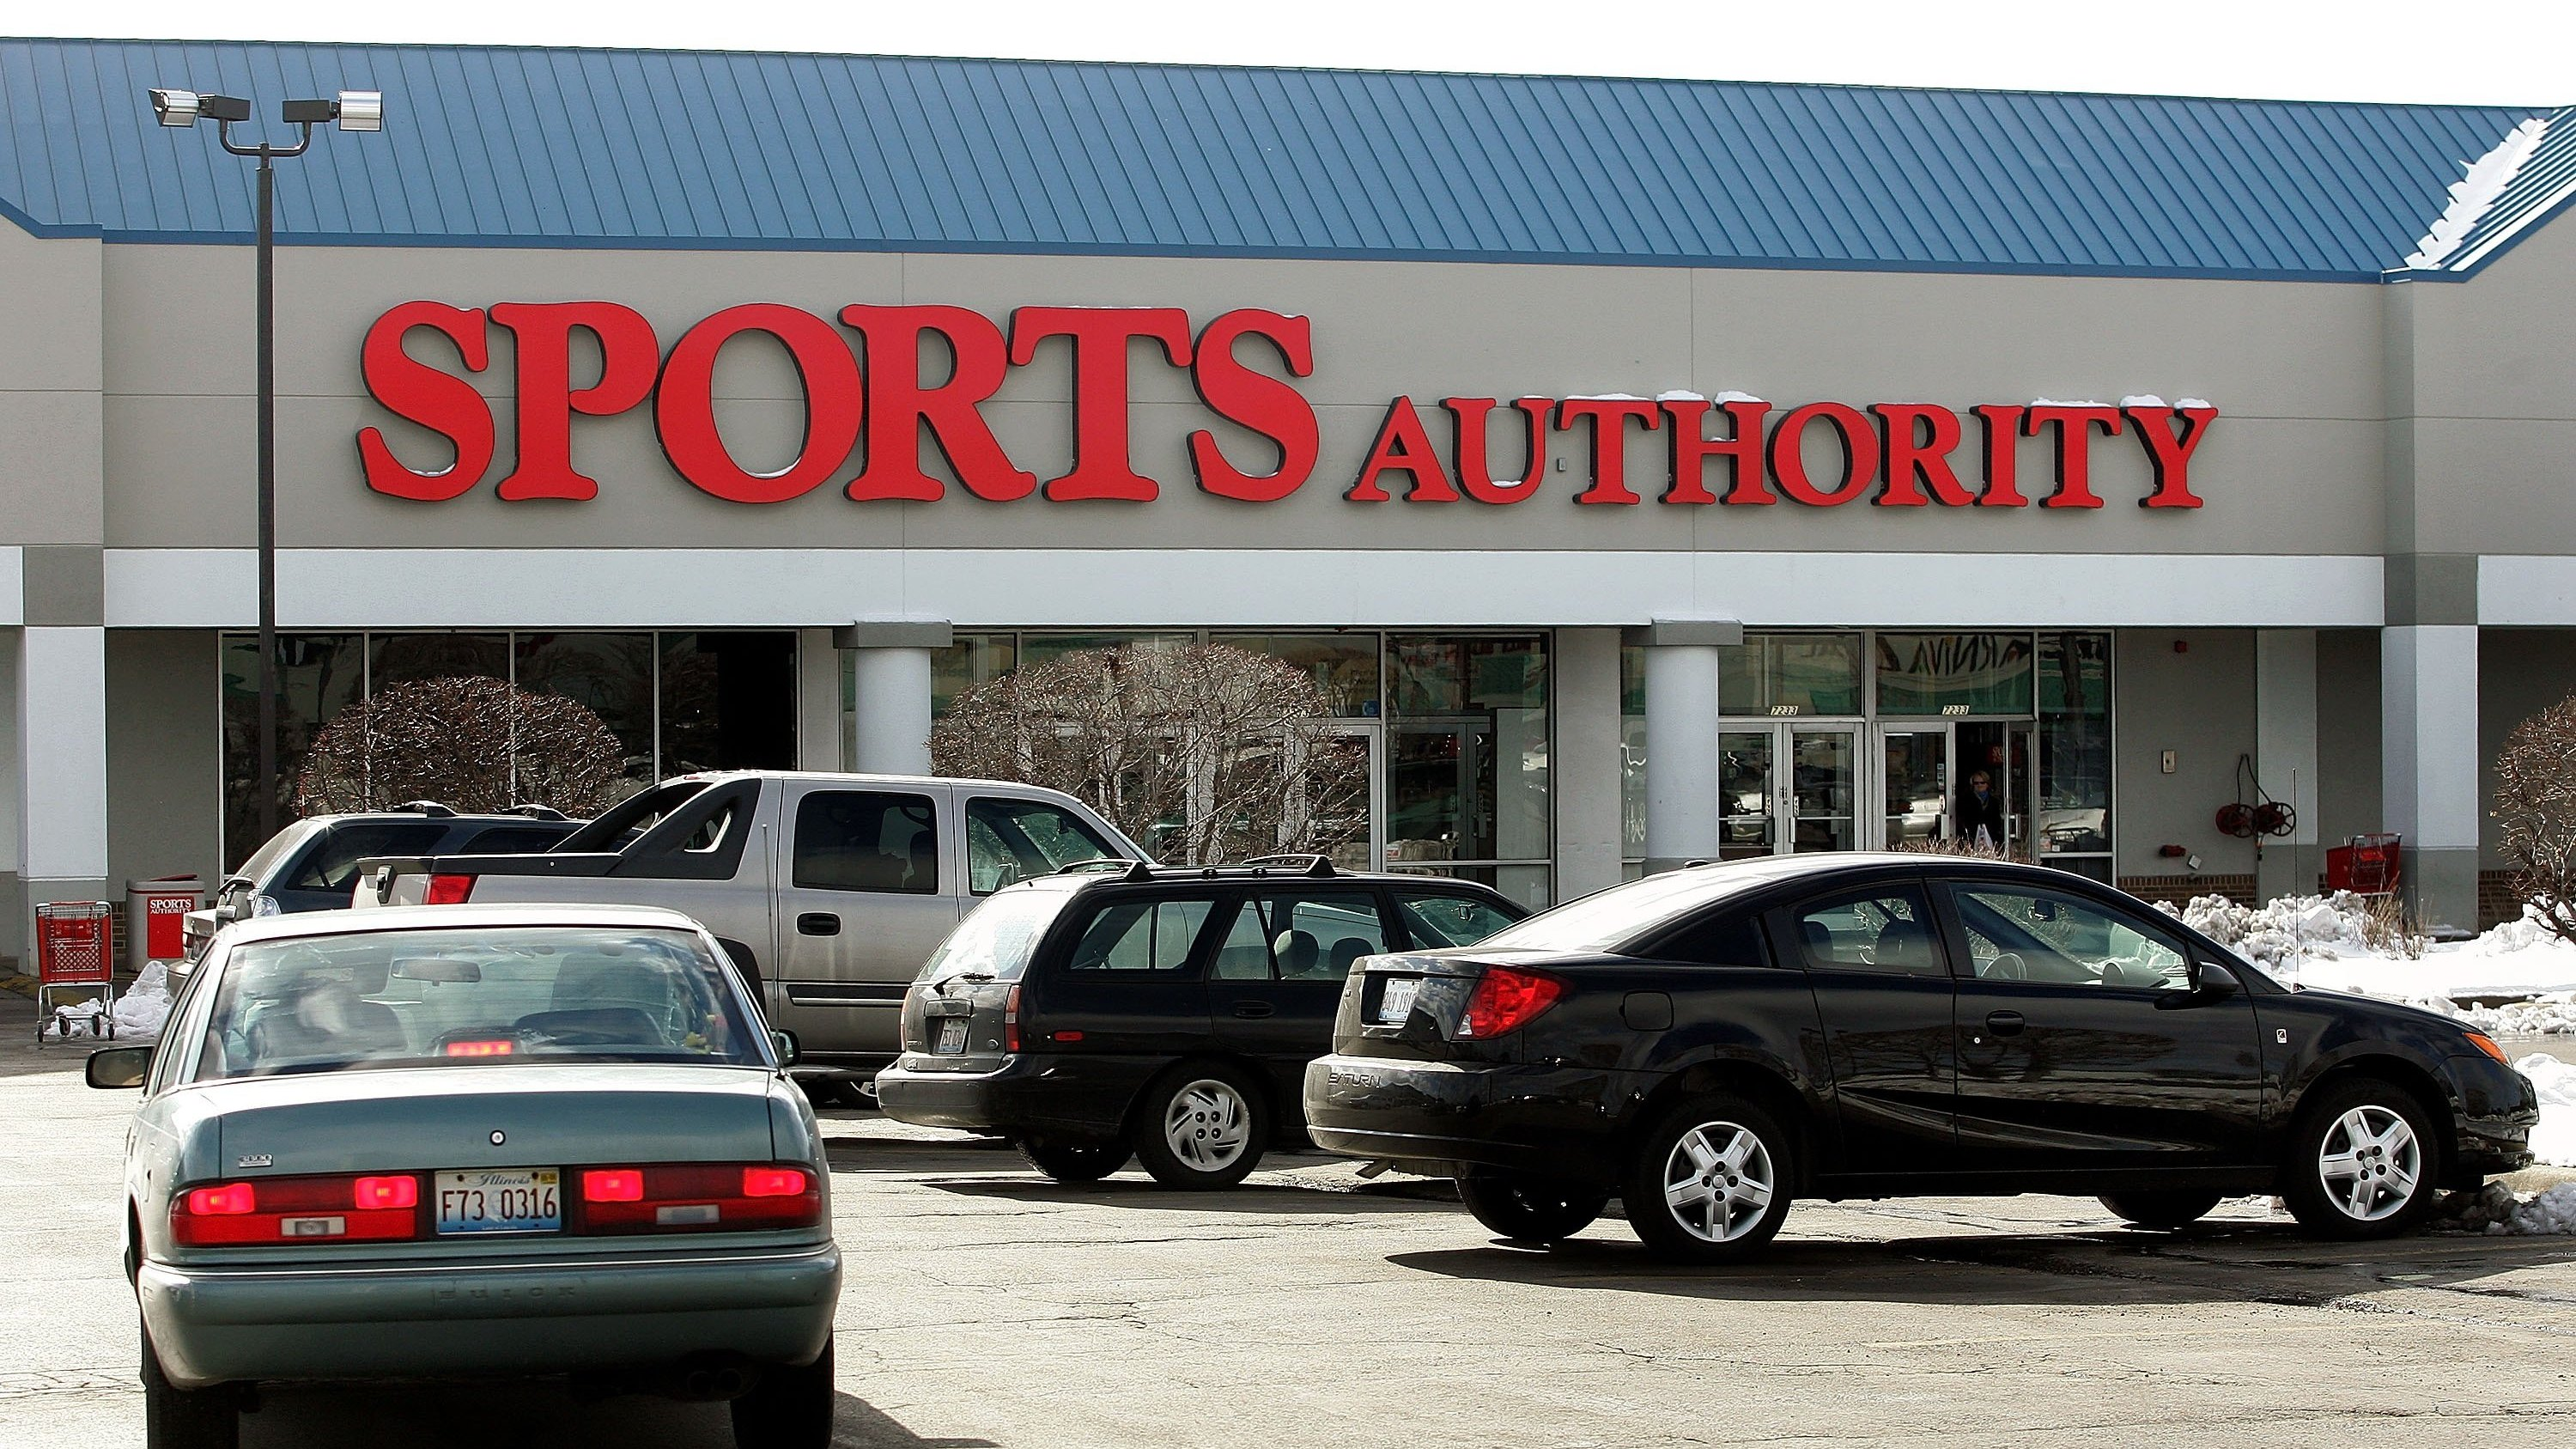 Sports Authority declares bankruptcy, lays off 3400 employees and considers selling itself